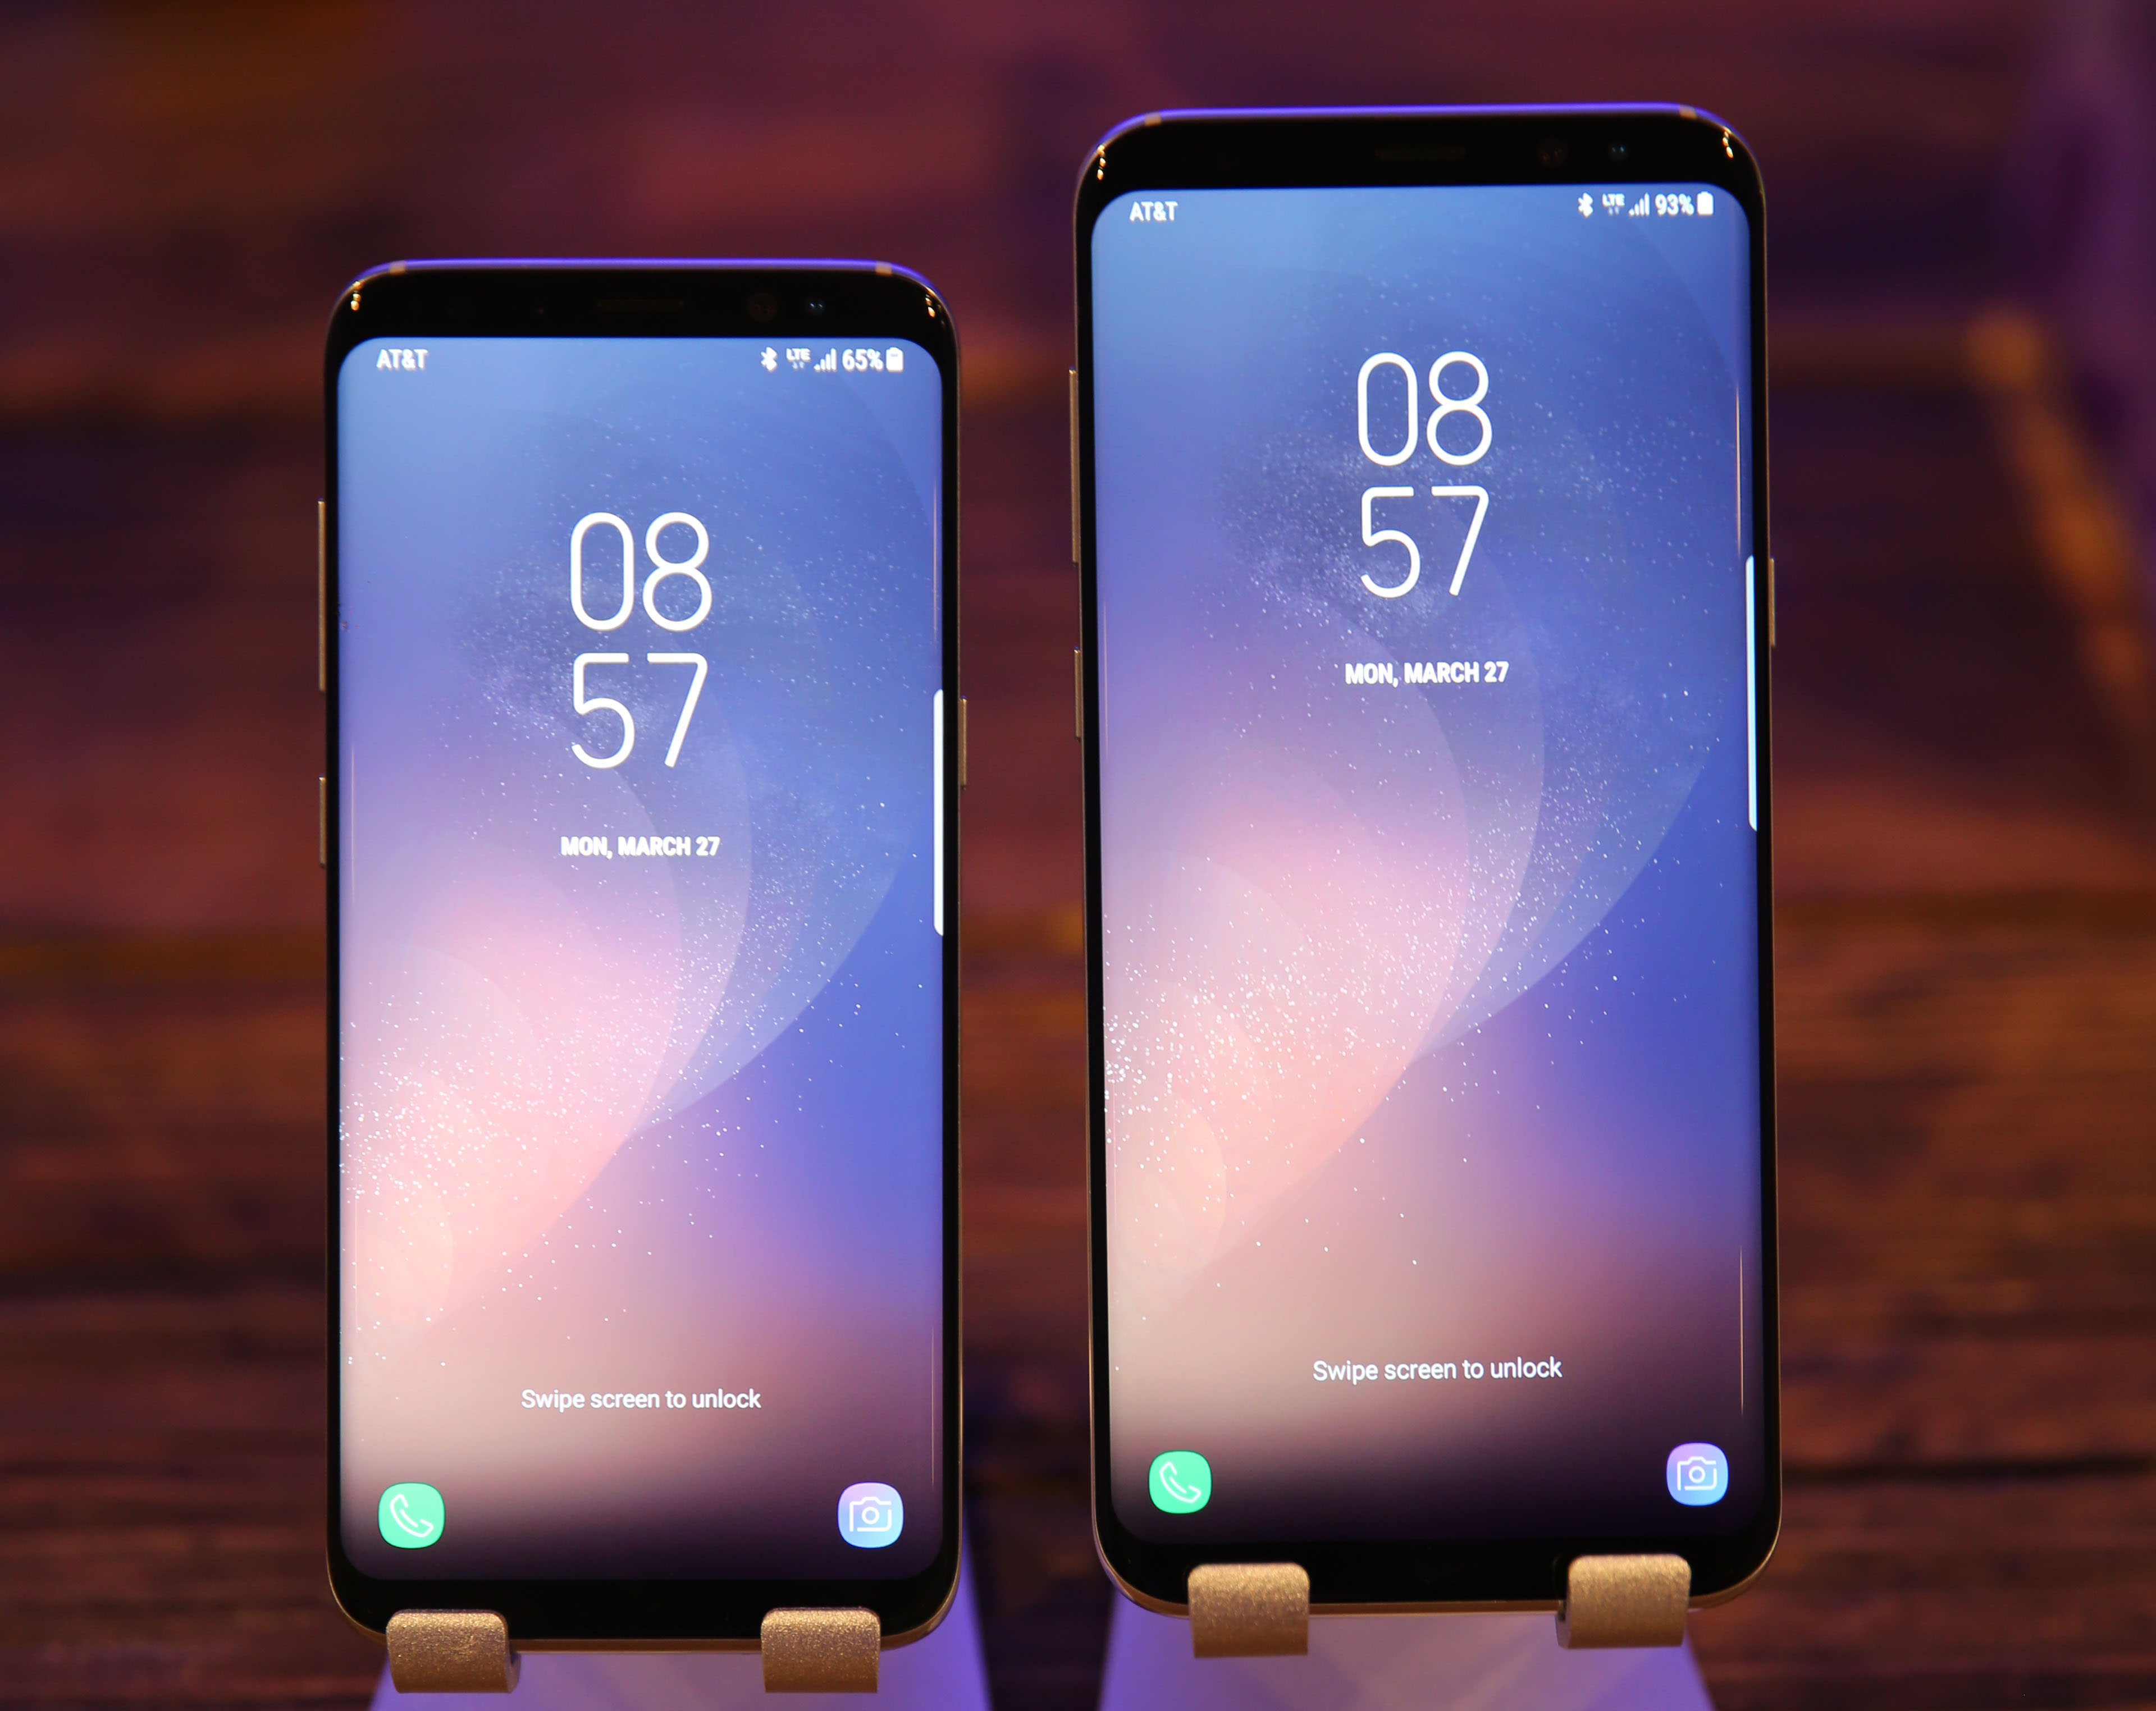 5 Galaxy S8 features you need to know about